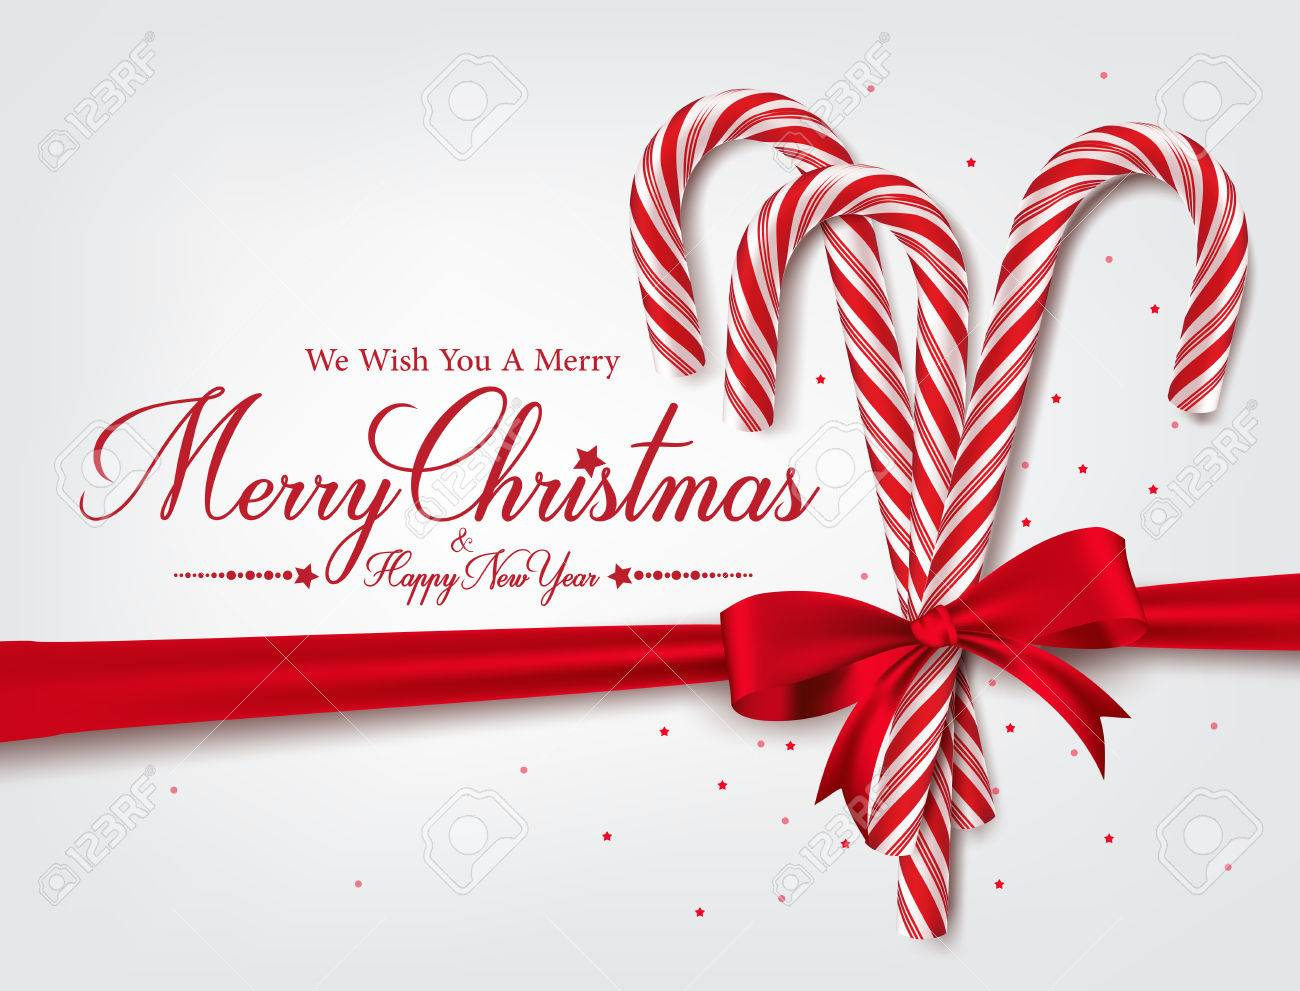 Merry Christmas Greetings In Realistic 3D Candy Cane And Christmas ...